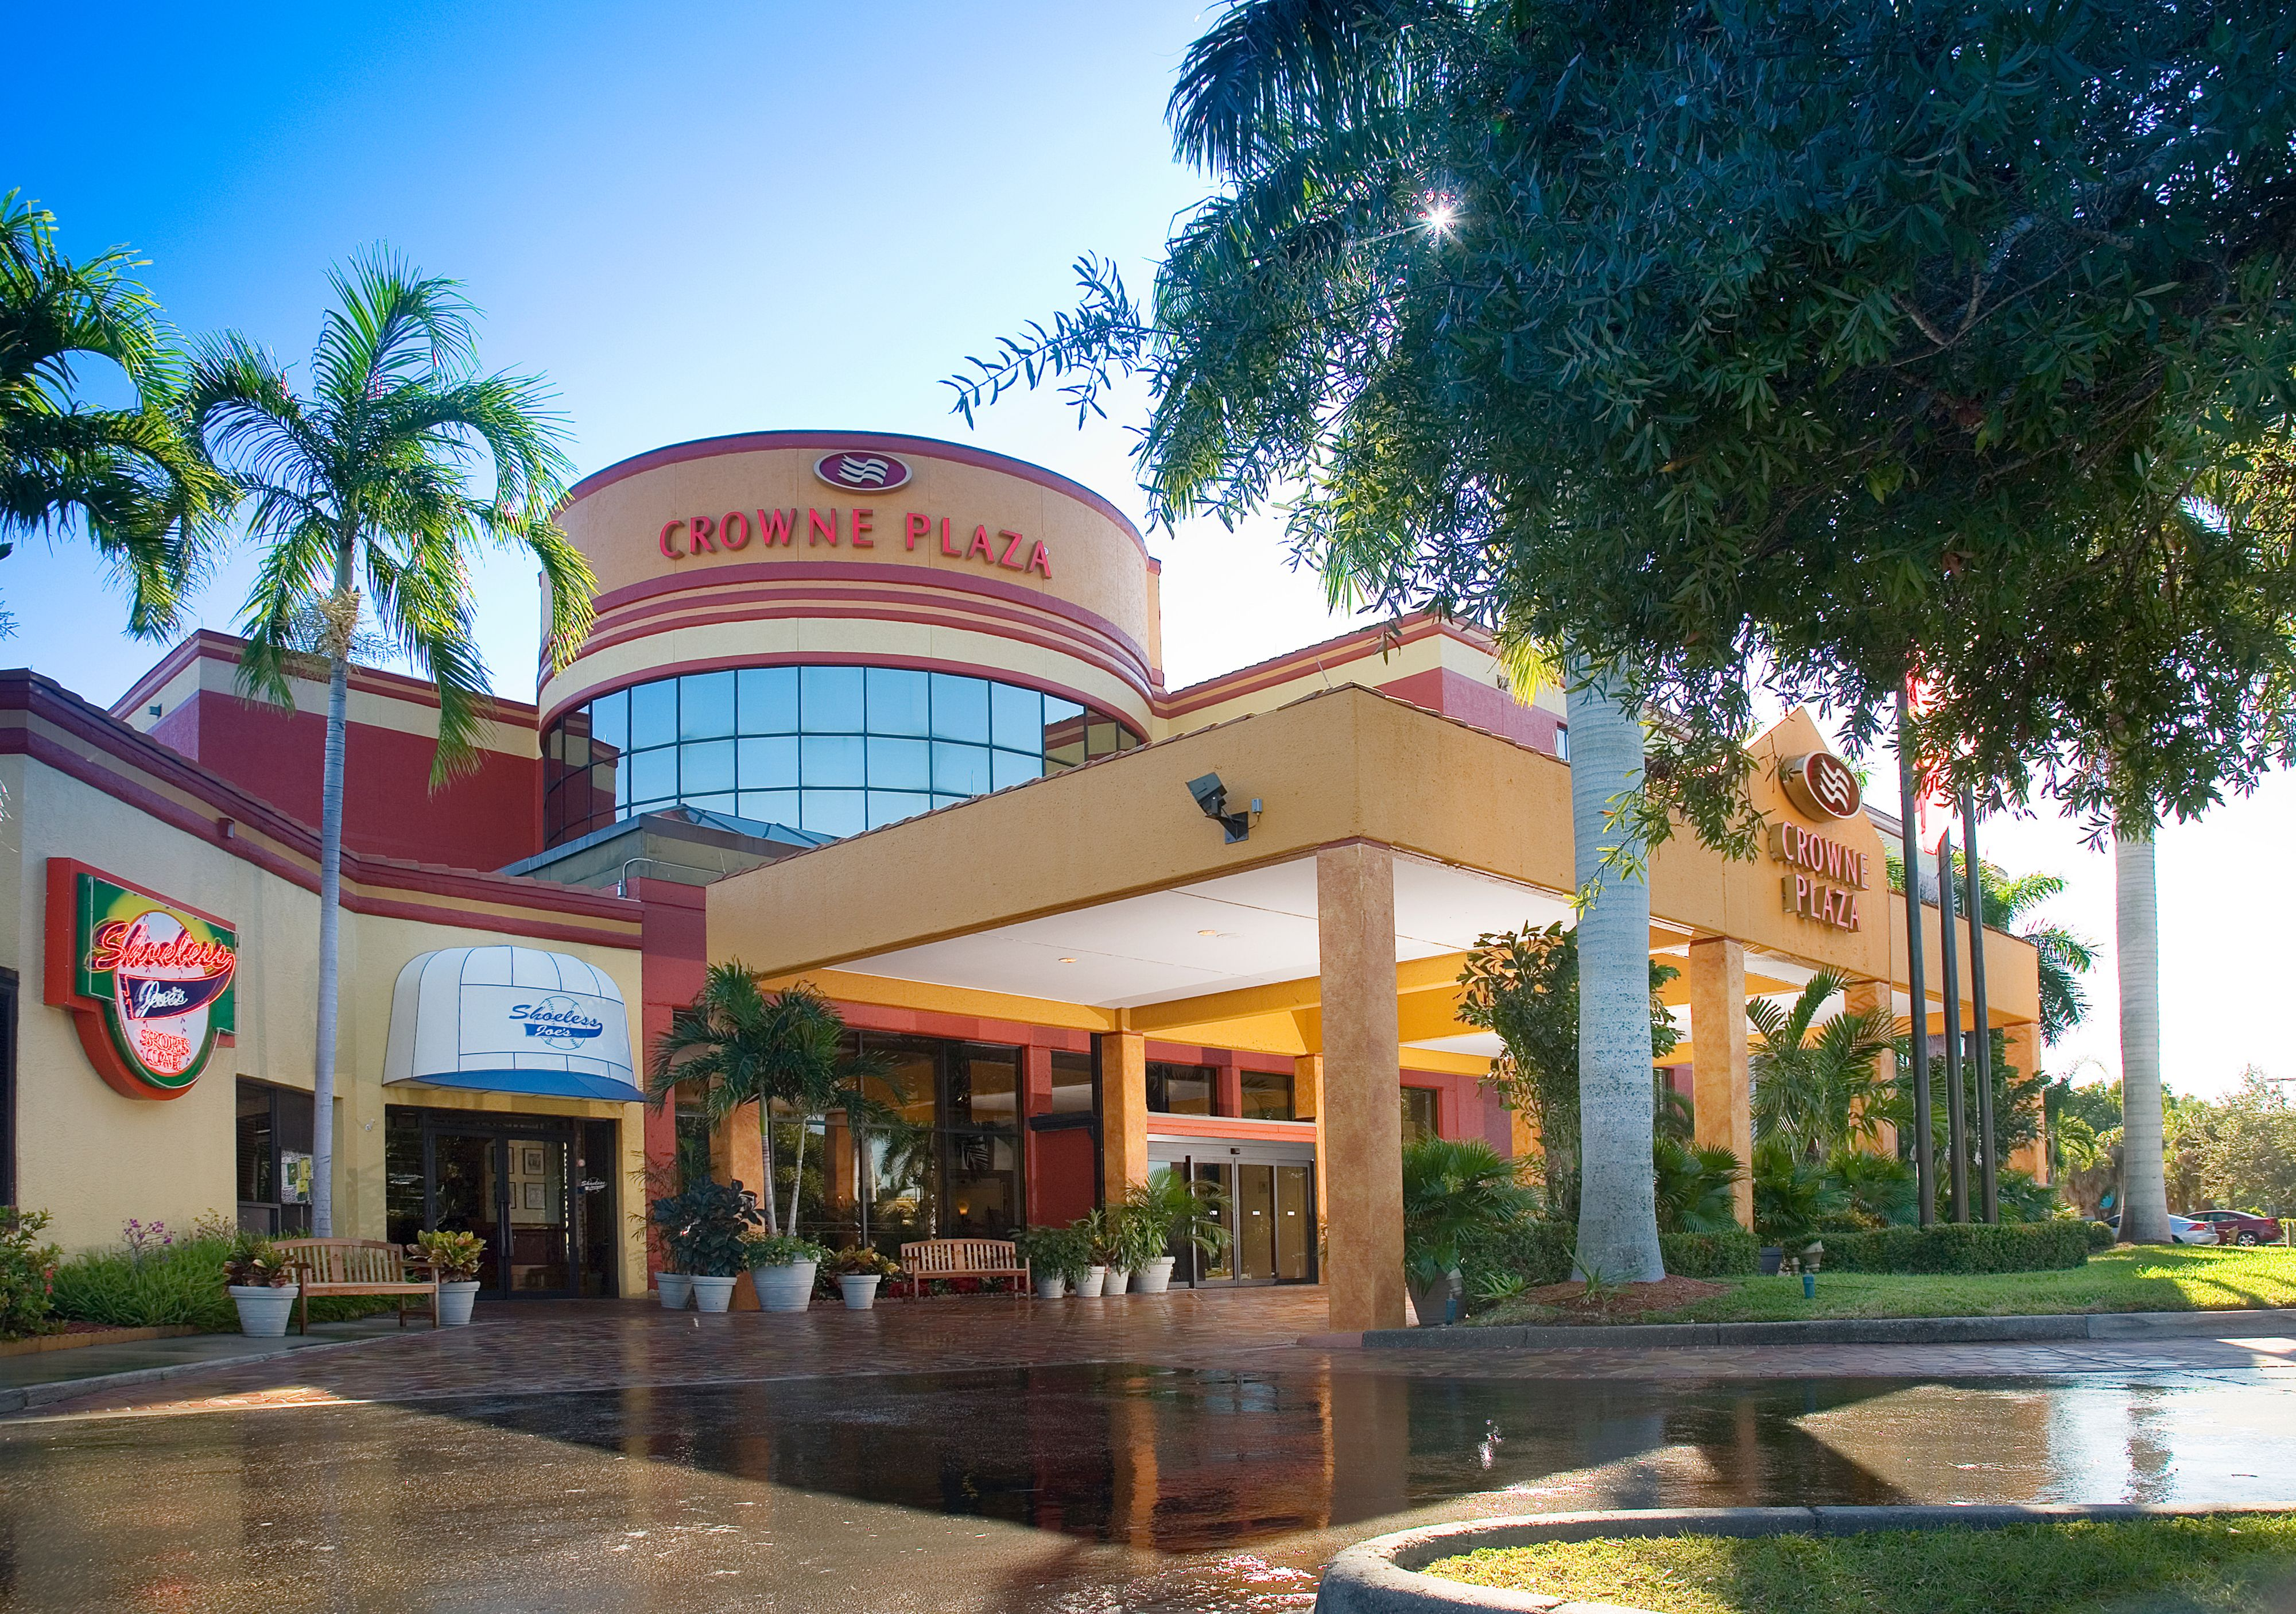 Hotel Edison Voucher Codes Shop on coolafil40.ga 2 hottest Hotel Edison coupon codes and sales in December are here for you. Well, today's star coupon is Sign Up for Hotel Edison Emails and Receive Exclusive News and Offers.